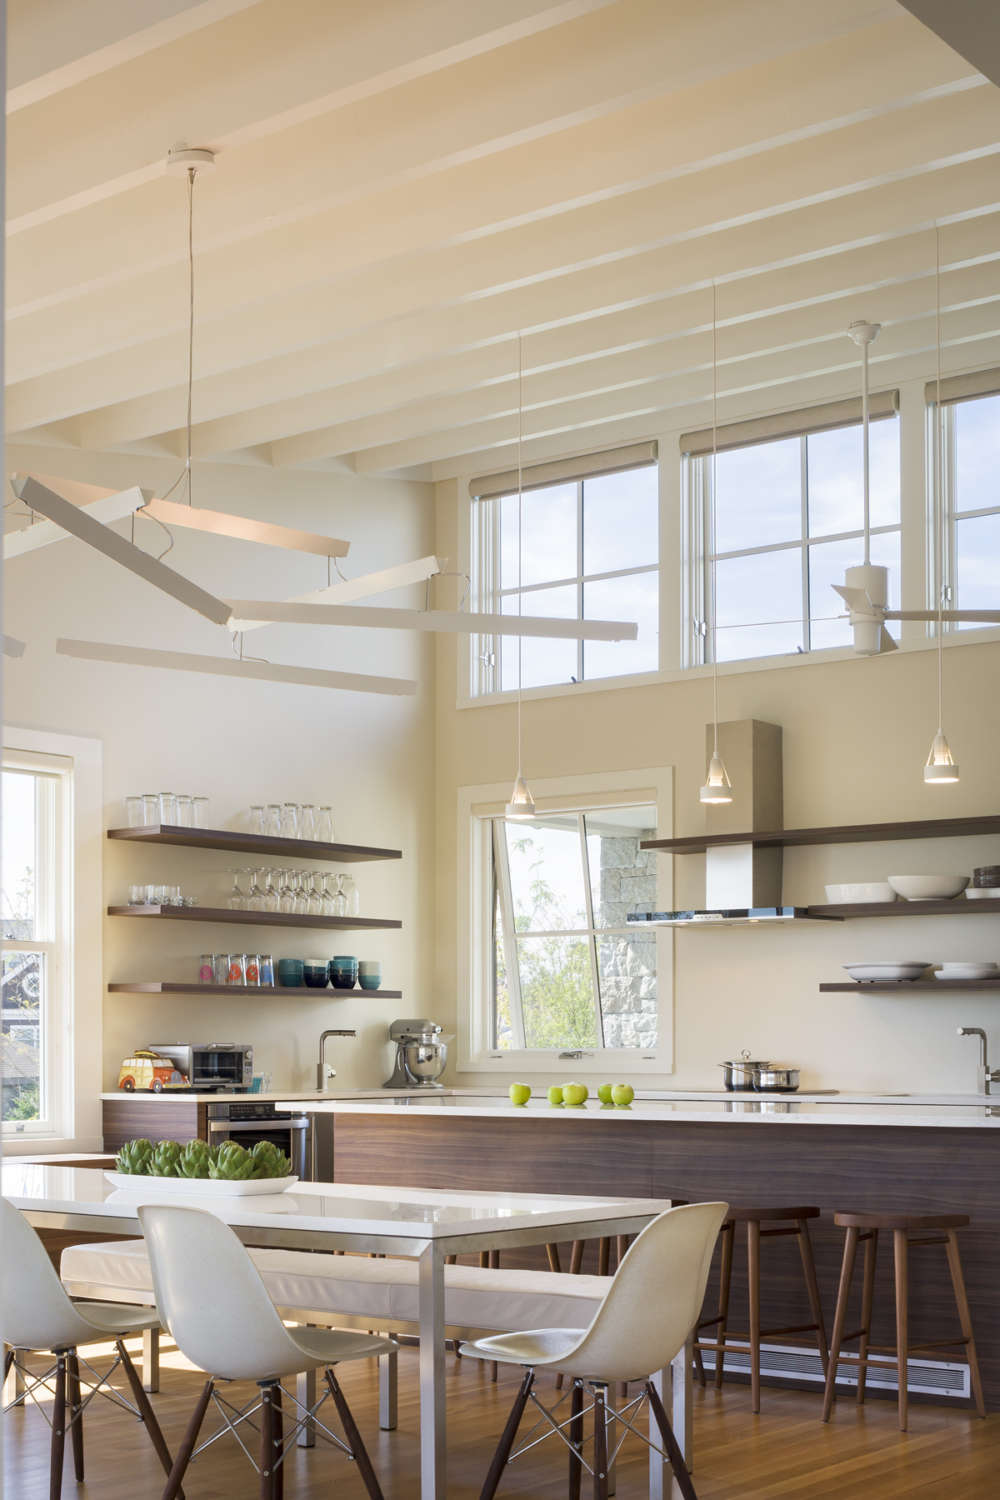 Airy kitchen has high ceilings, abundant natural light and flat panel, fully custom frameless cabinetry by Artcraft in natural walnut. The kitchen features natural walnut open shelving and a large island with white quartz countertop. Design by Randy O'Kane, CKD, of Bilotta Kitchens.